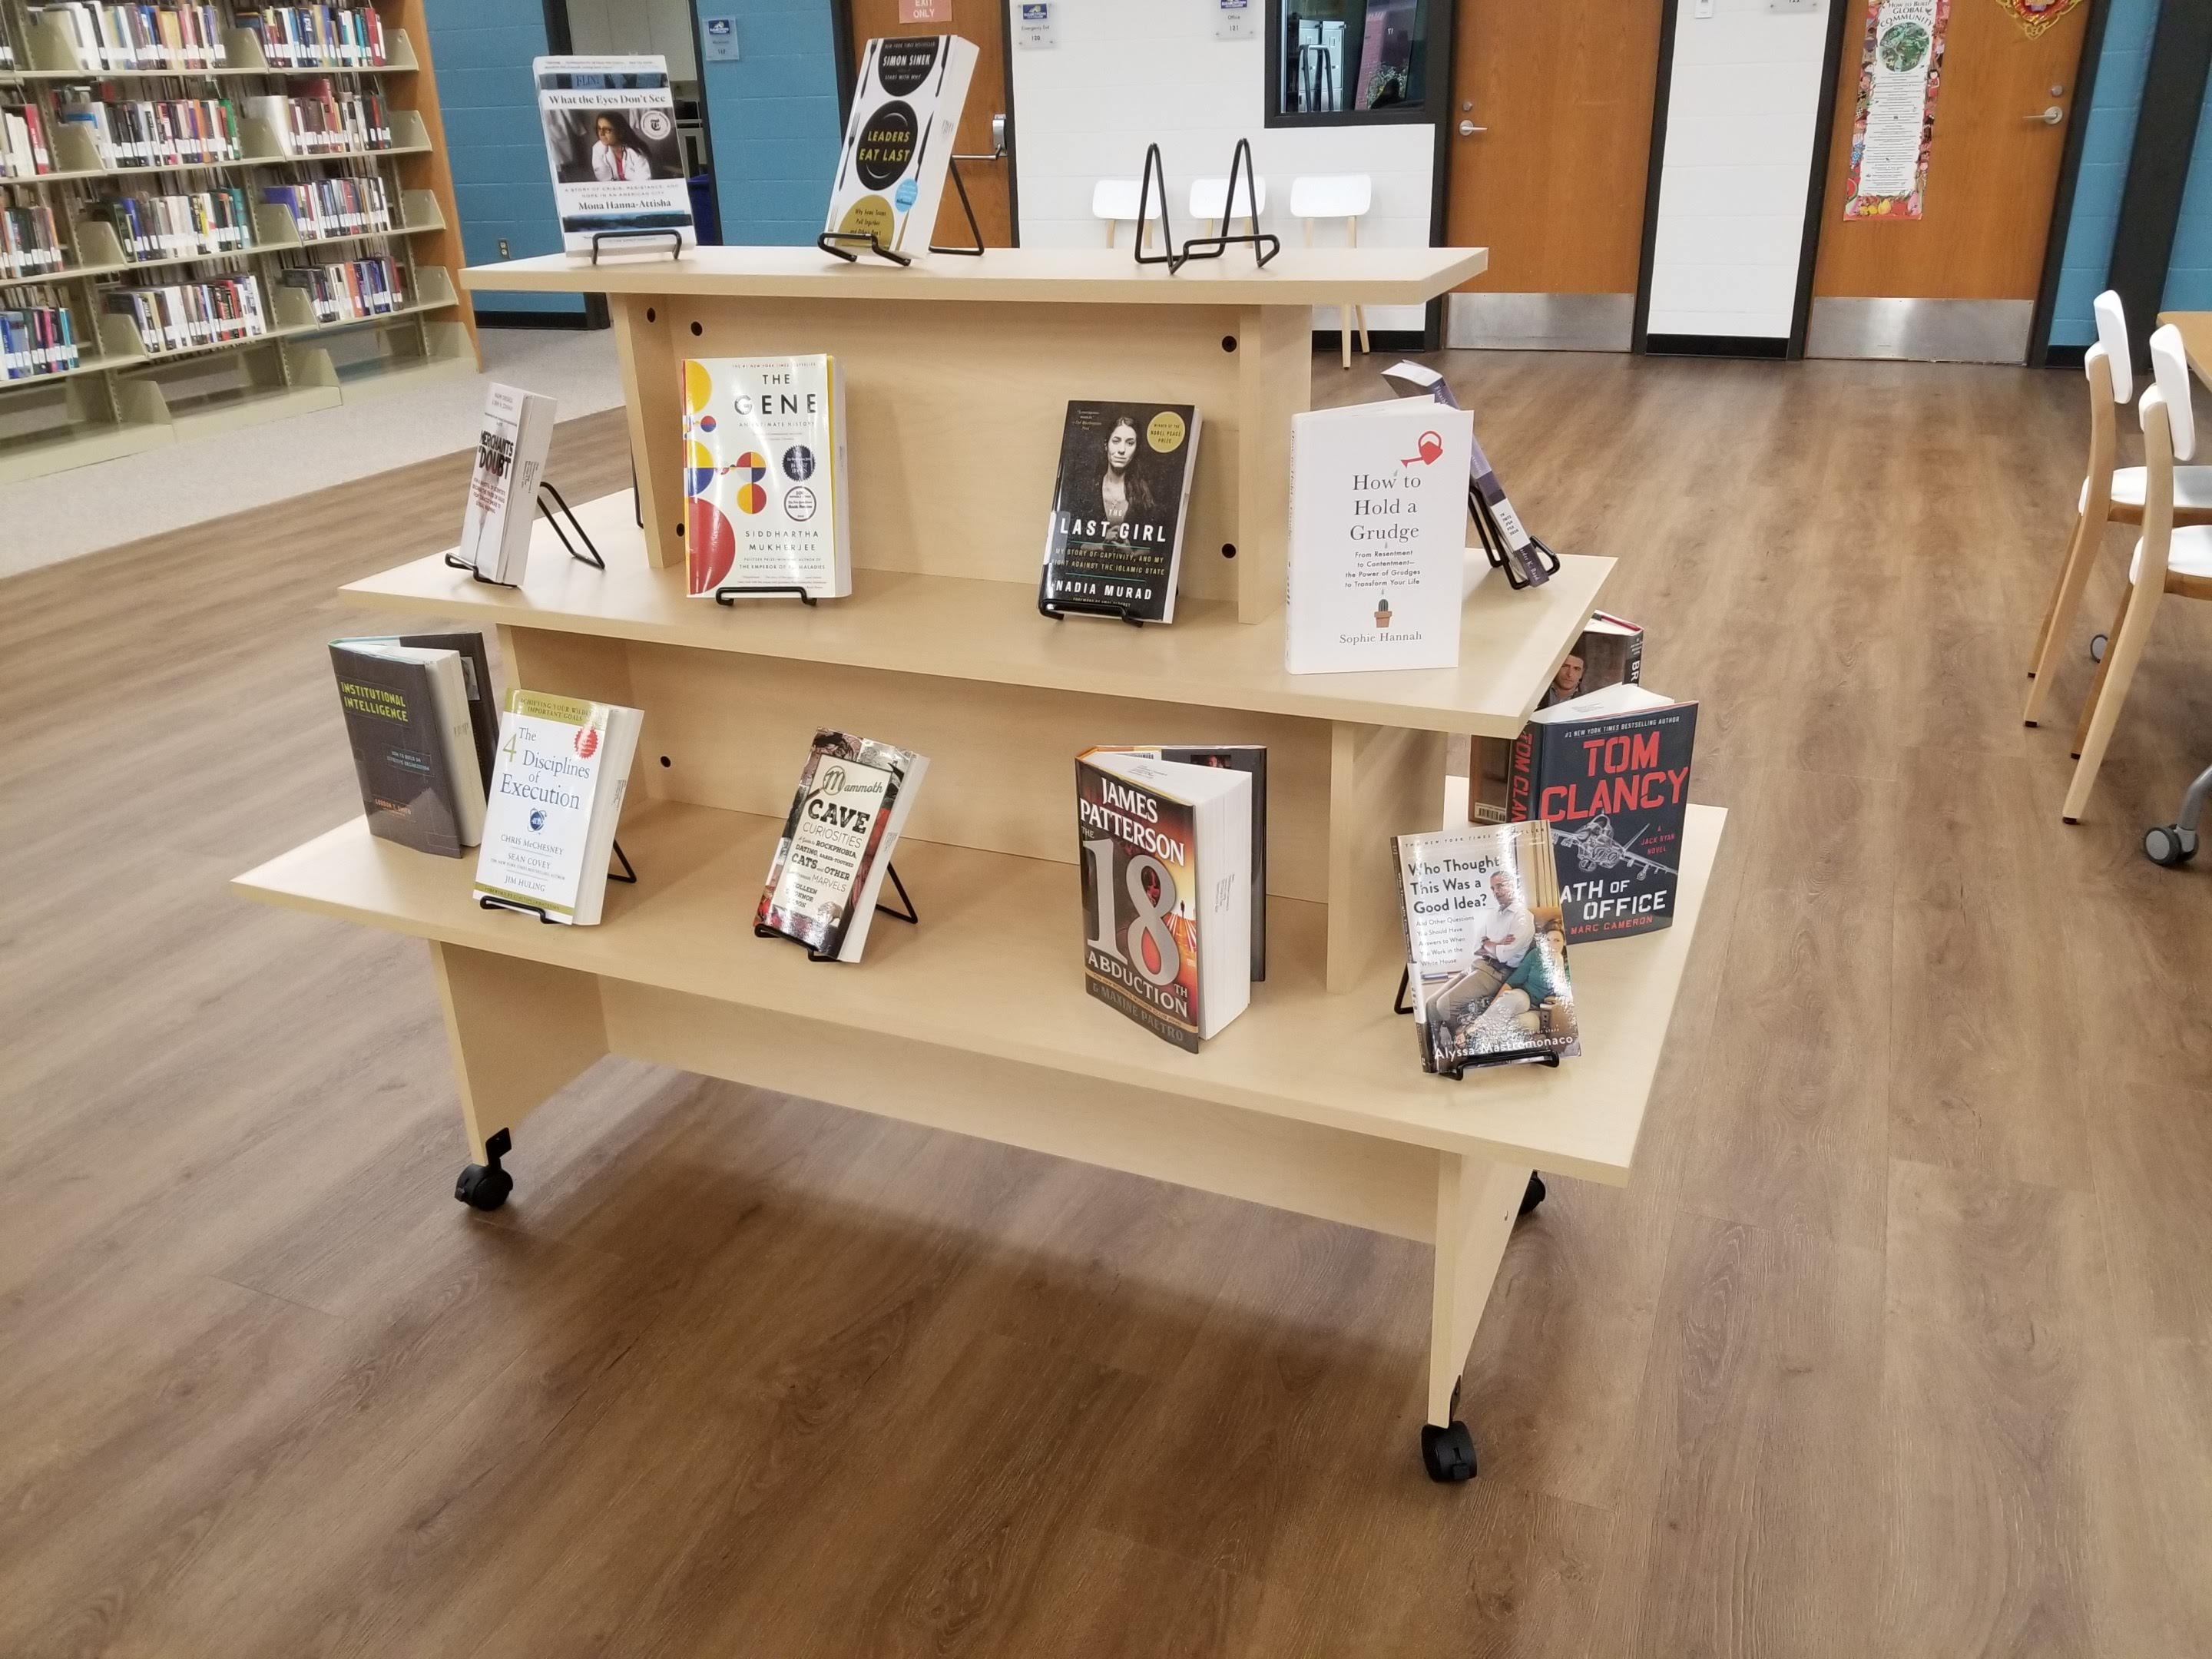 Library New Book Display